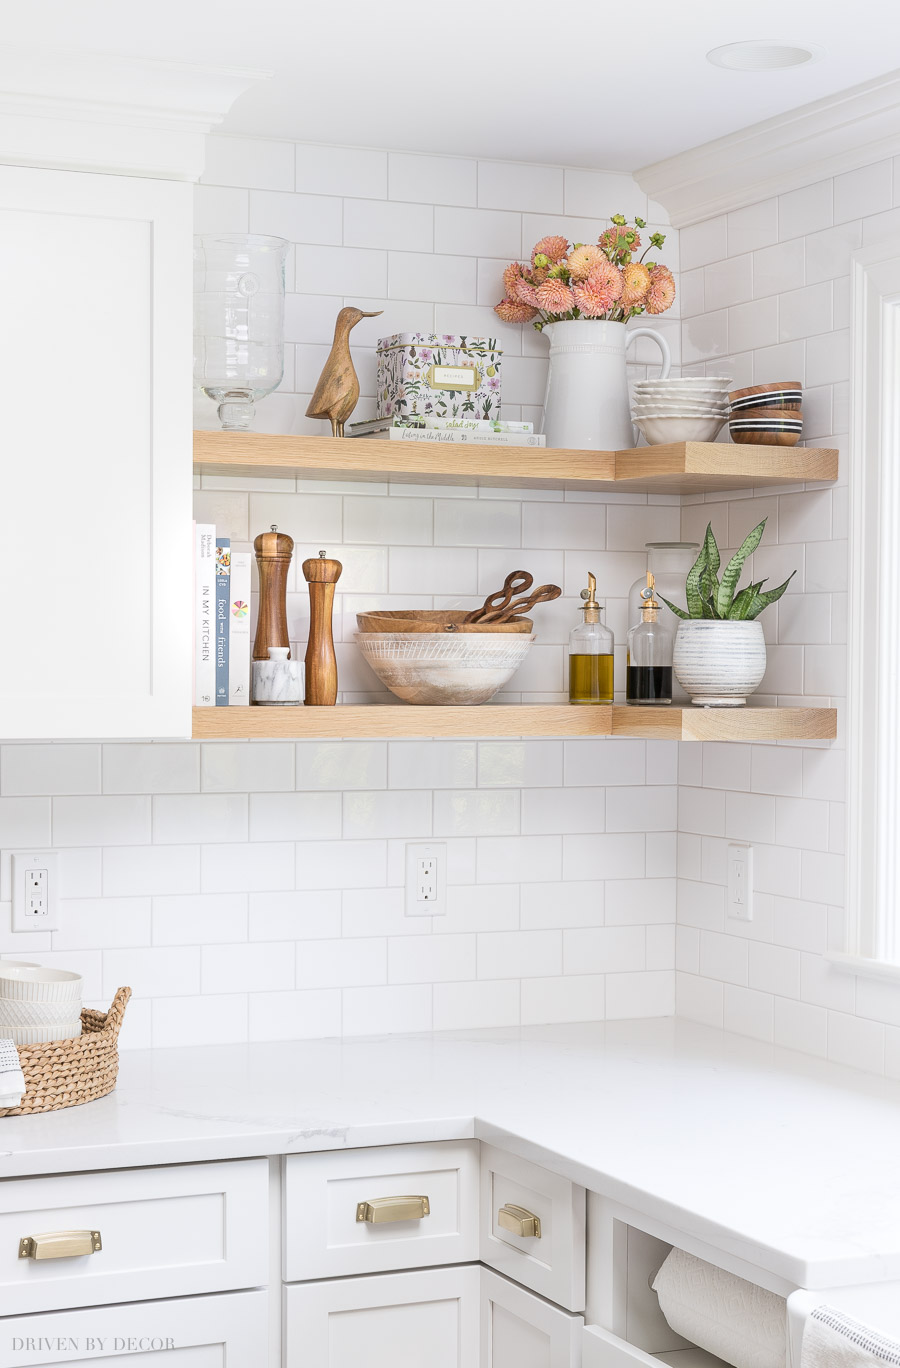 Totally stealing ideas for what to put on my open kitchen shelving - love these accessories! Also how the shelves wrap around the corner!